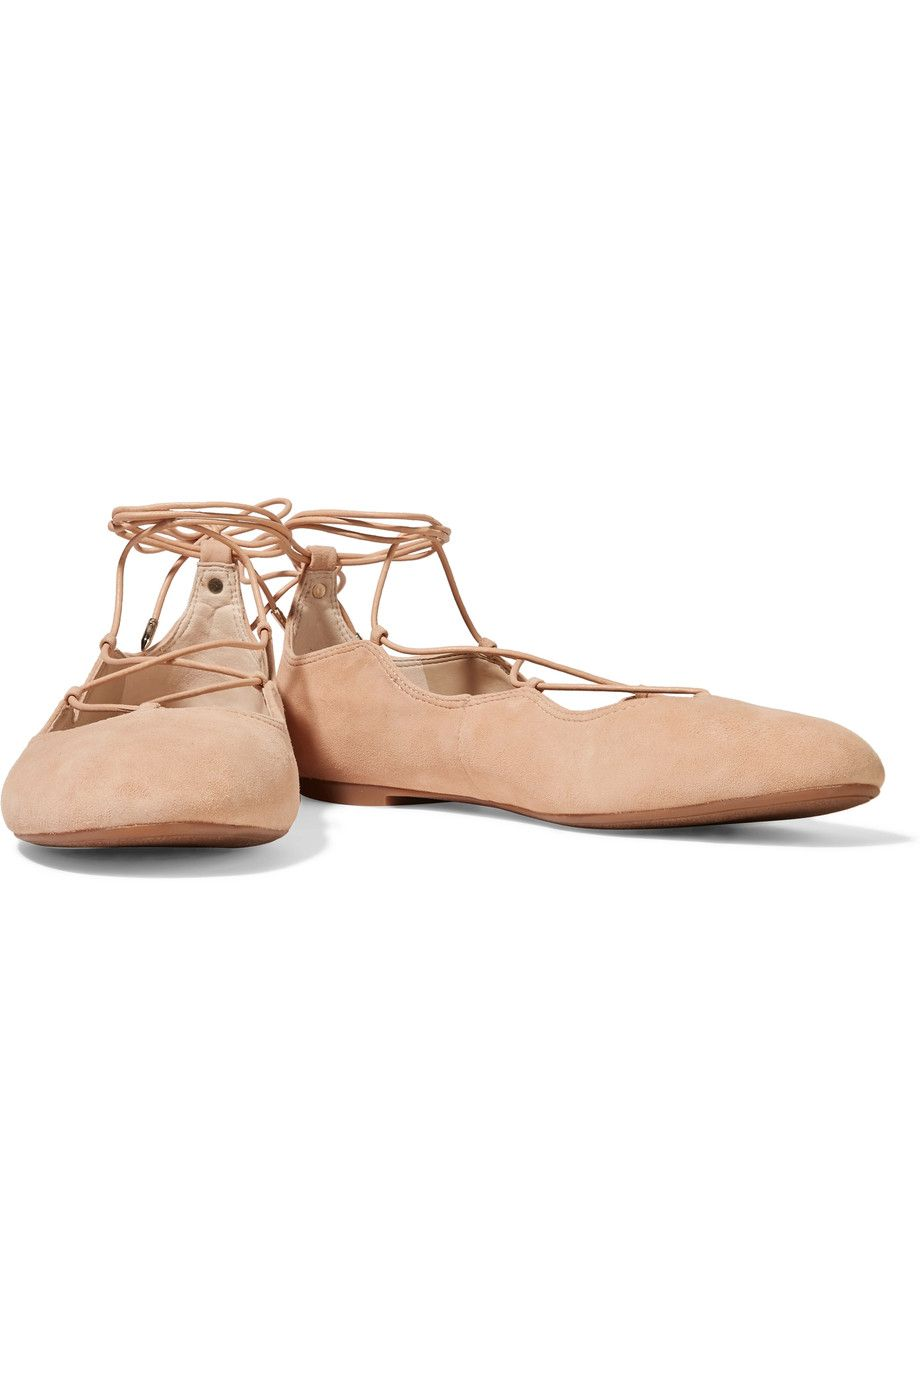 dae482c233b658 Shop on-sale Sam Edelman Gretchen lace-up suede ballet flats. Browse other  discount designer Flat Shoes   more on The Most Fashionable Fashion Outlet